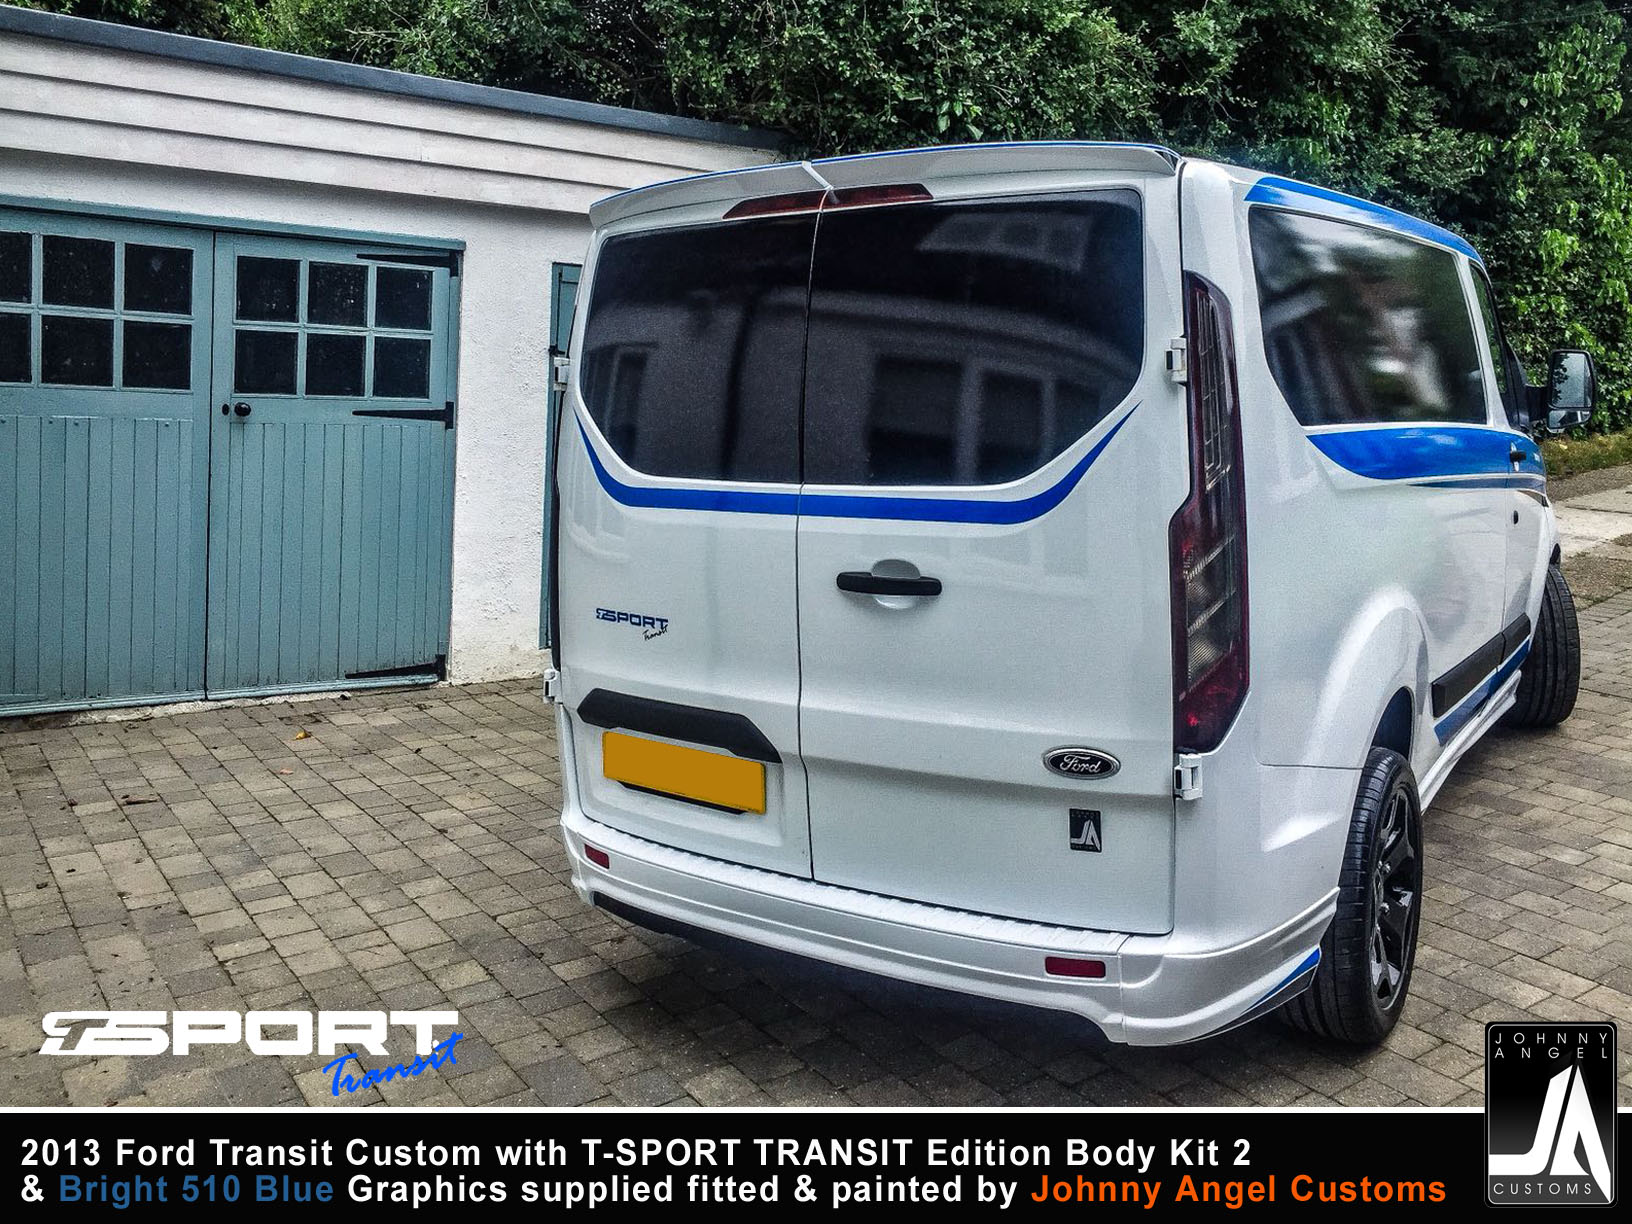 2013 Ford Transit Custom with T-SPORT TRANSIT Edition Body Kit 2 By Johnny Angel Customs pic16